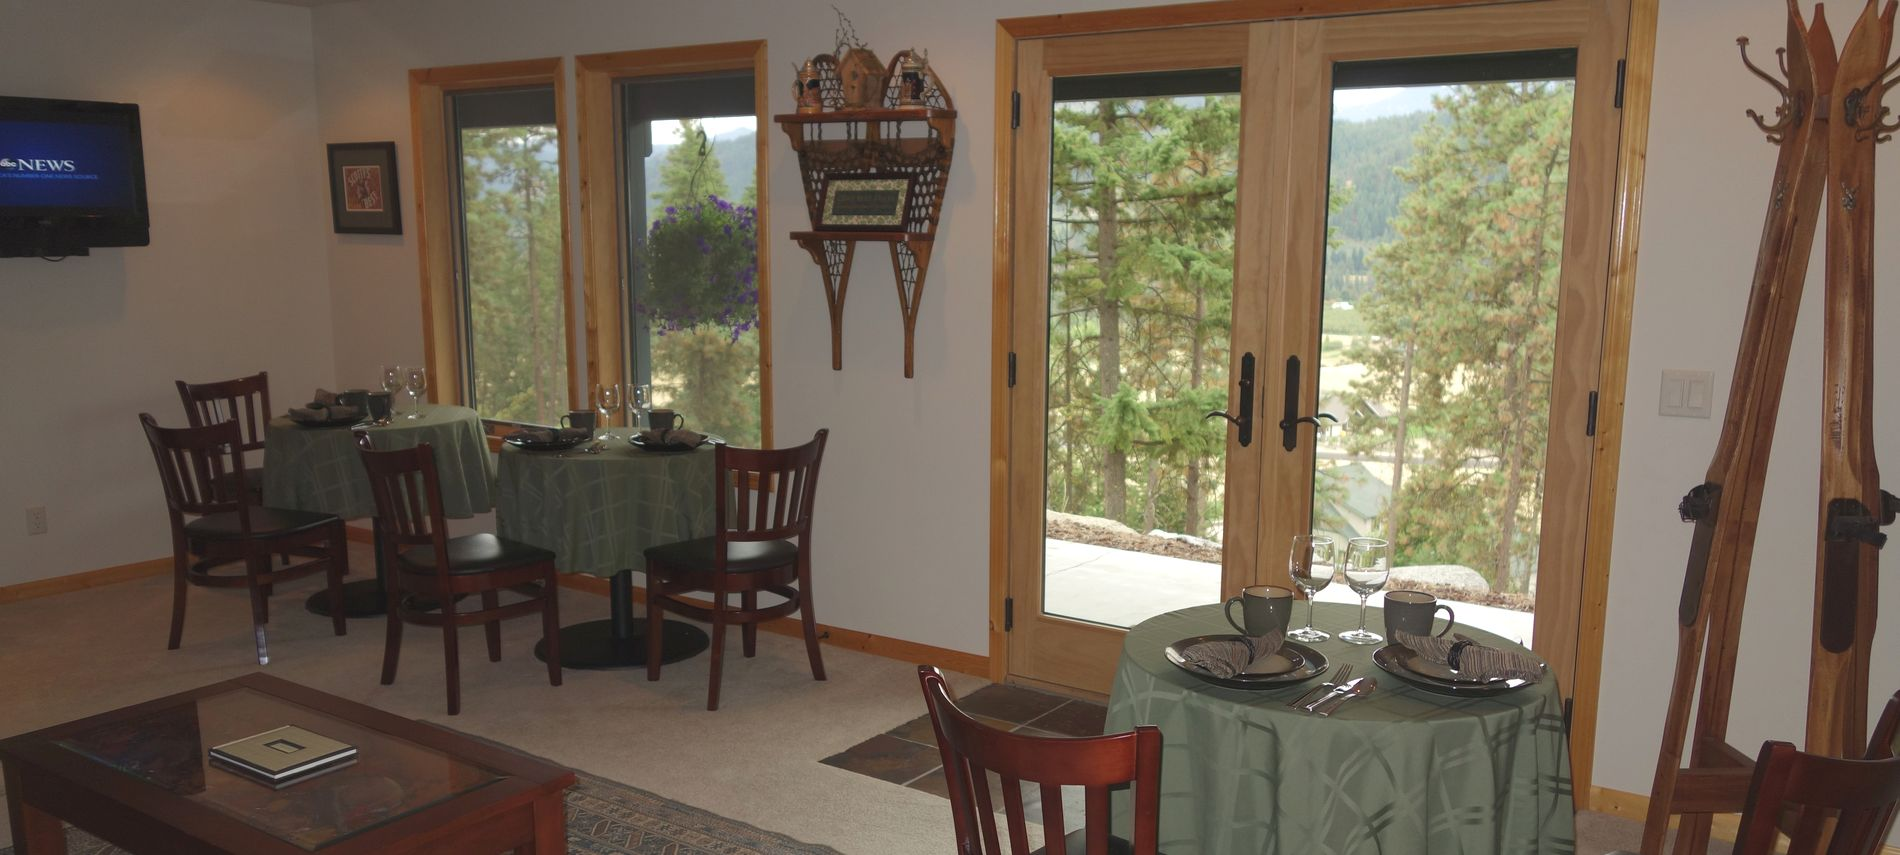 Interior of dining room showing exterior view of green trees and purple mountains.